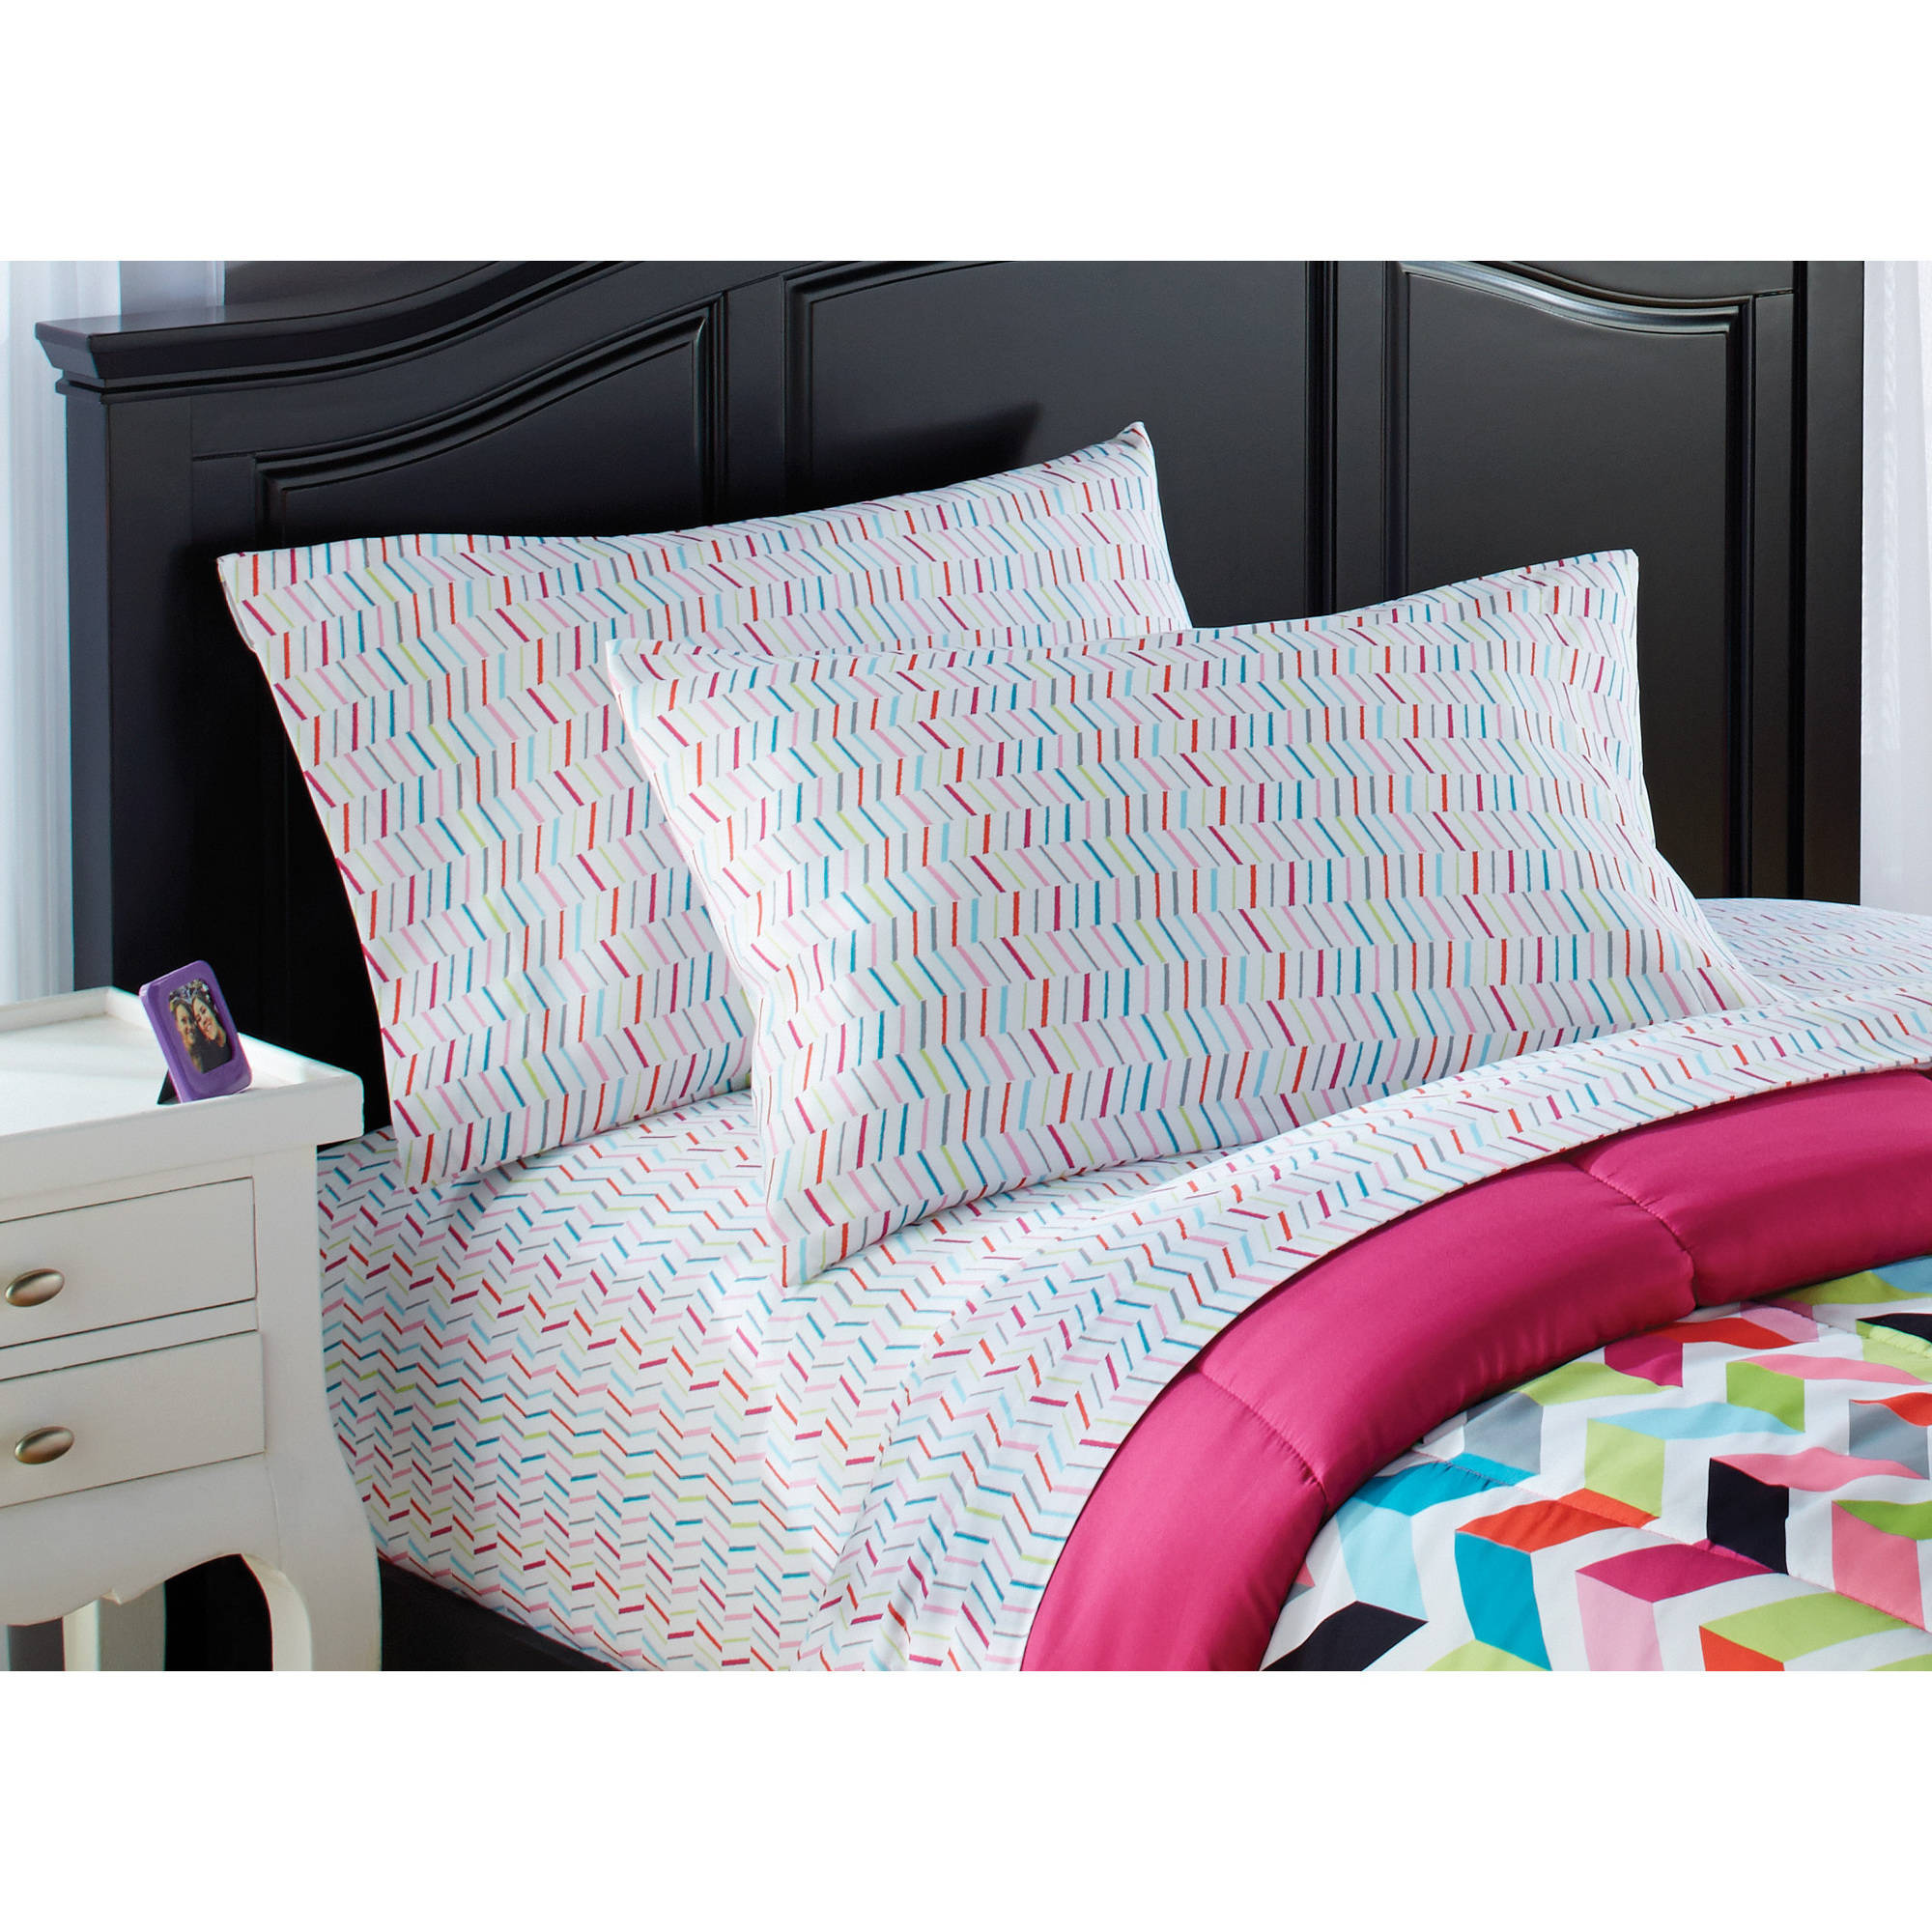 full liven bed bedroom colorful with your covers of ways duvet to up bedding beautiful bestduvetcovers club top